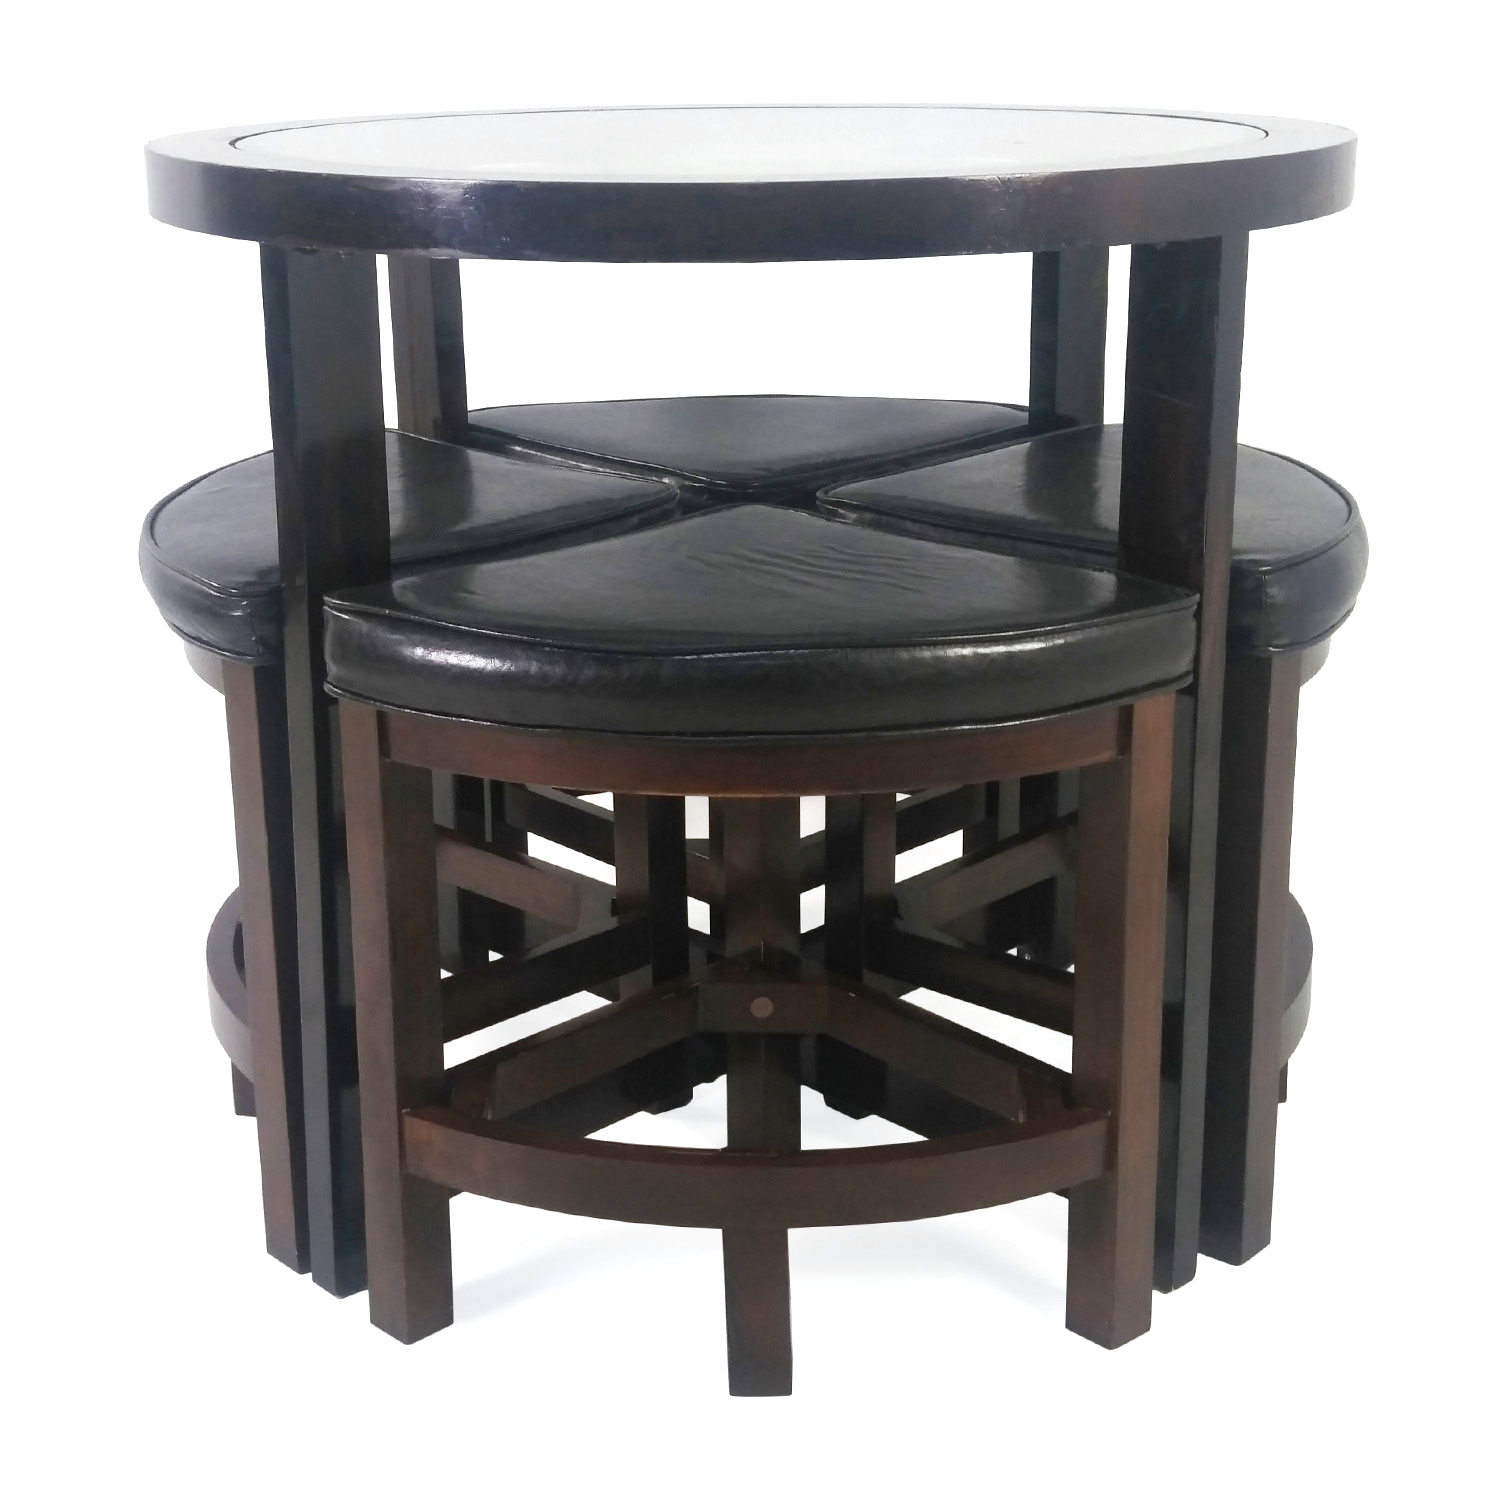 73 off amazon circular dinette with 4 chairs tables for Circular dining table